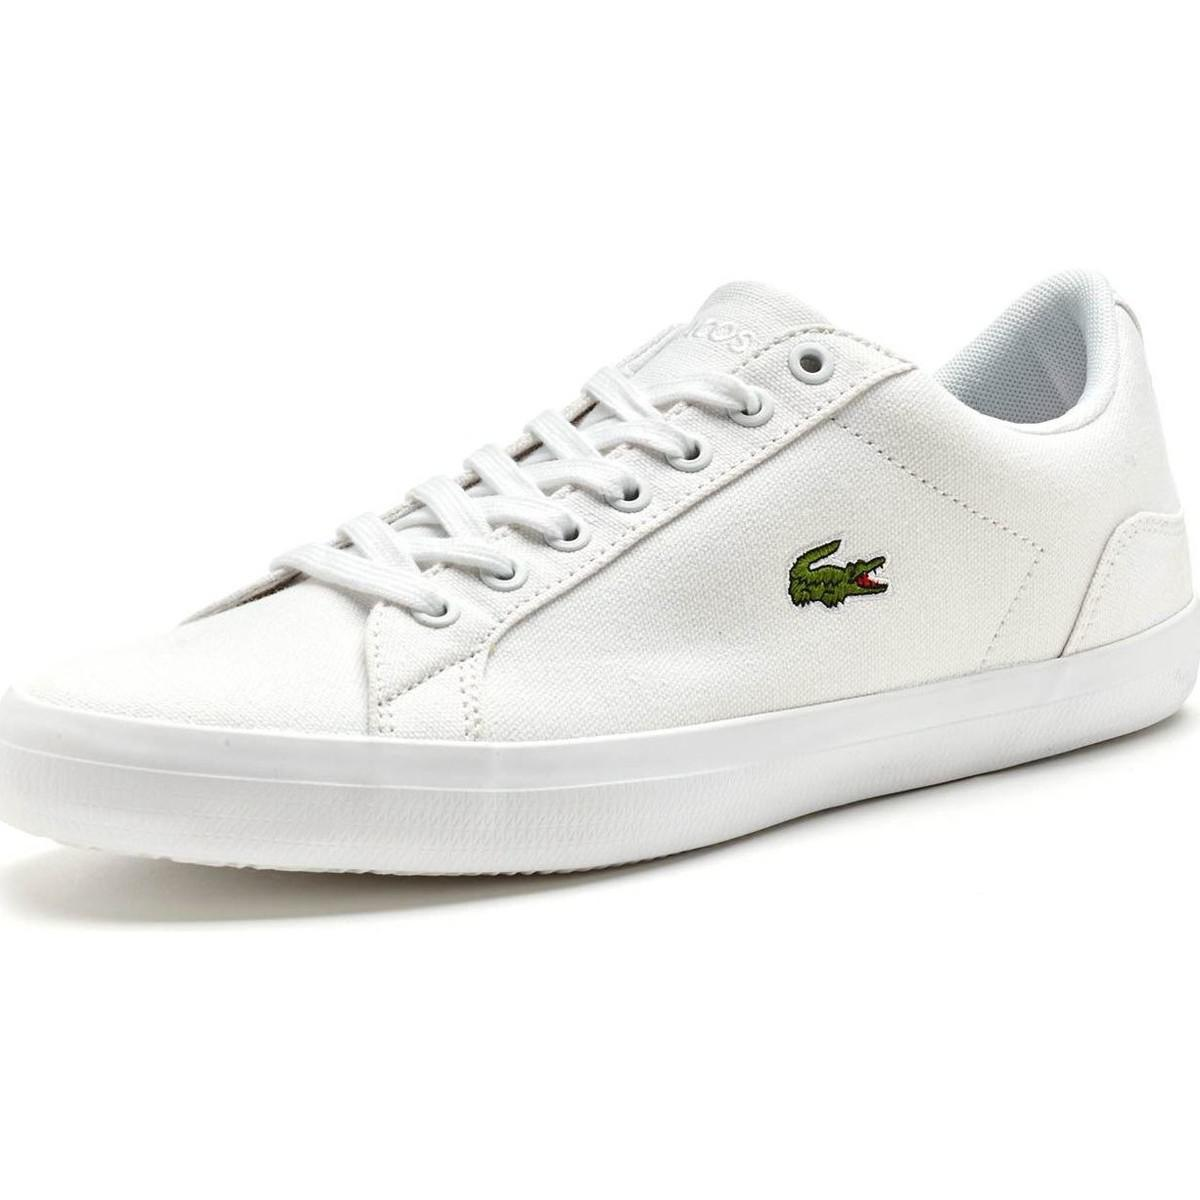 4341549dce02 Lacoste - Lerond Bl 2 Cam Trainers In White 733cam1033 001 Men s Shoes ( trainers). View fullscreen